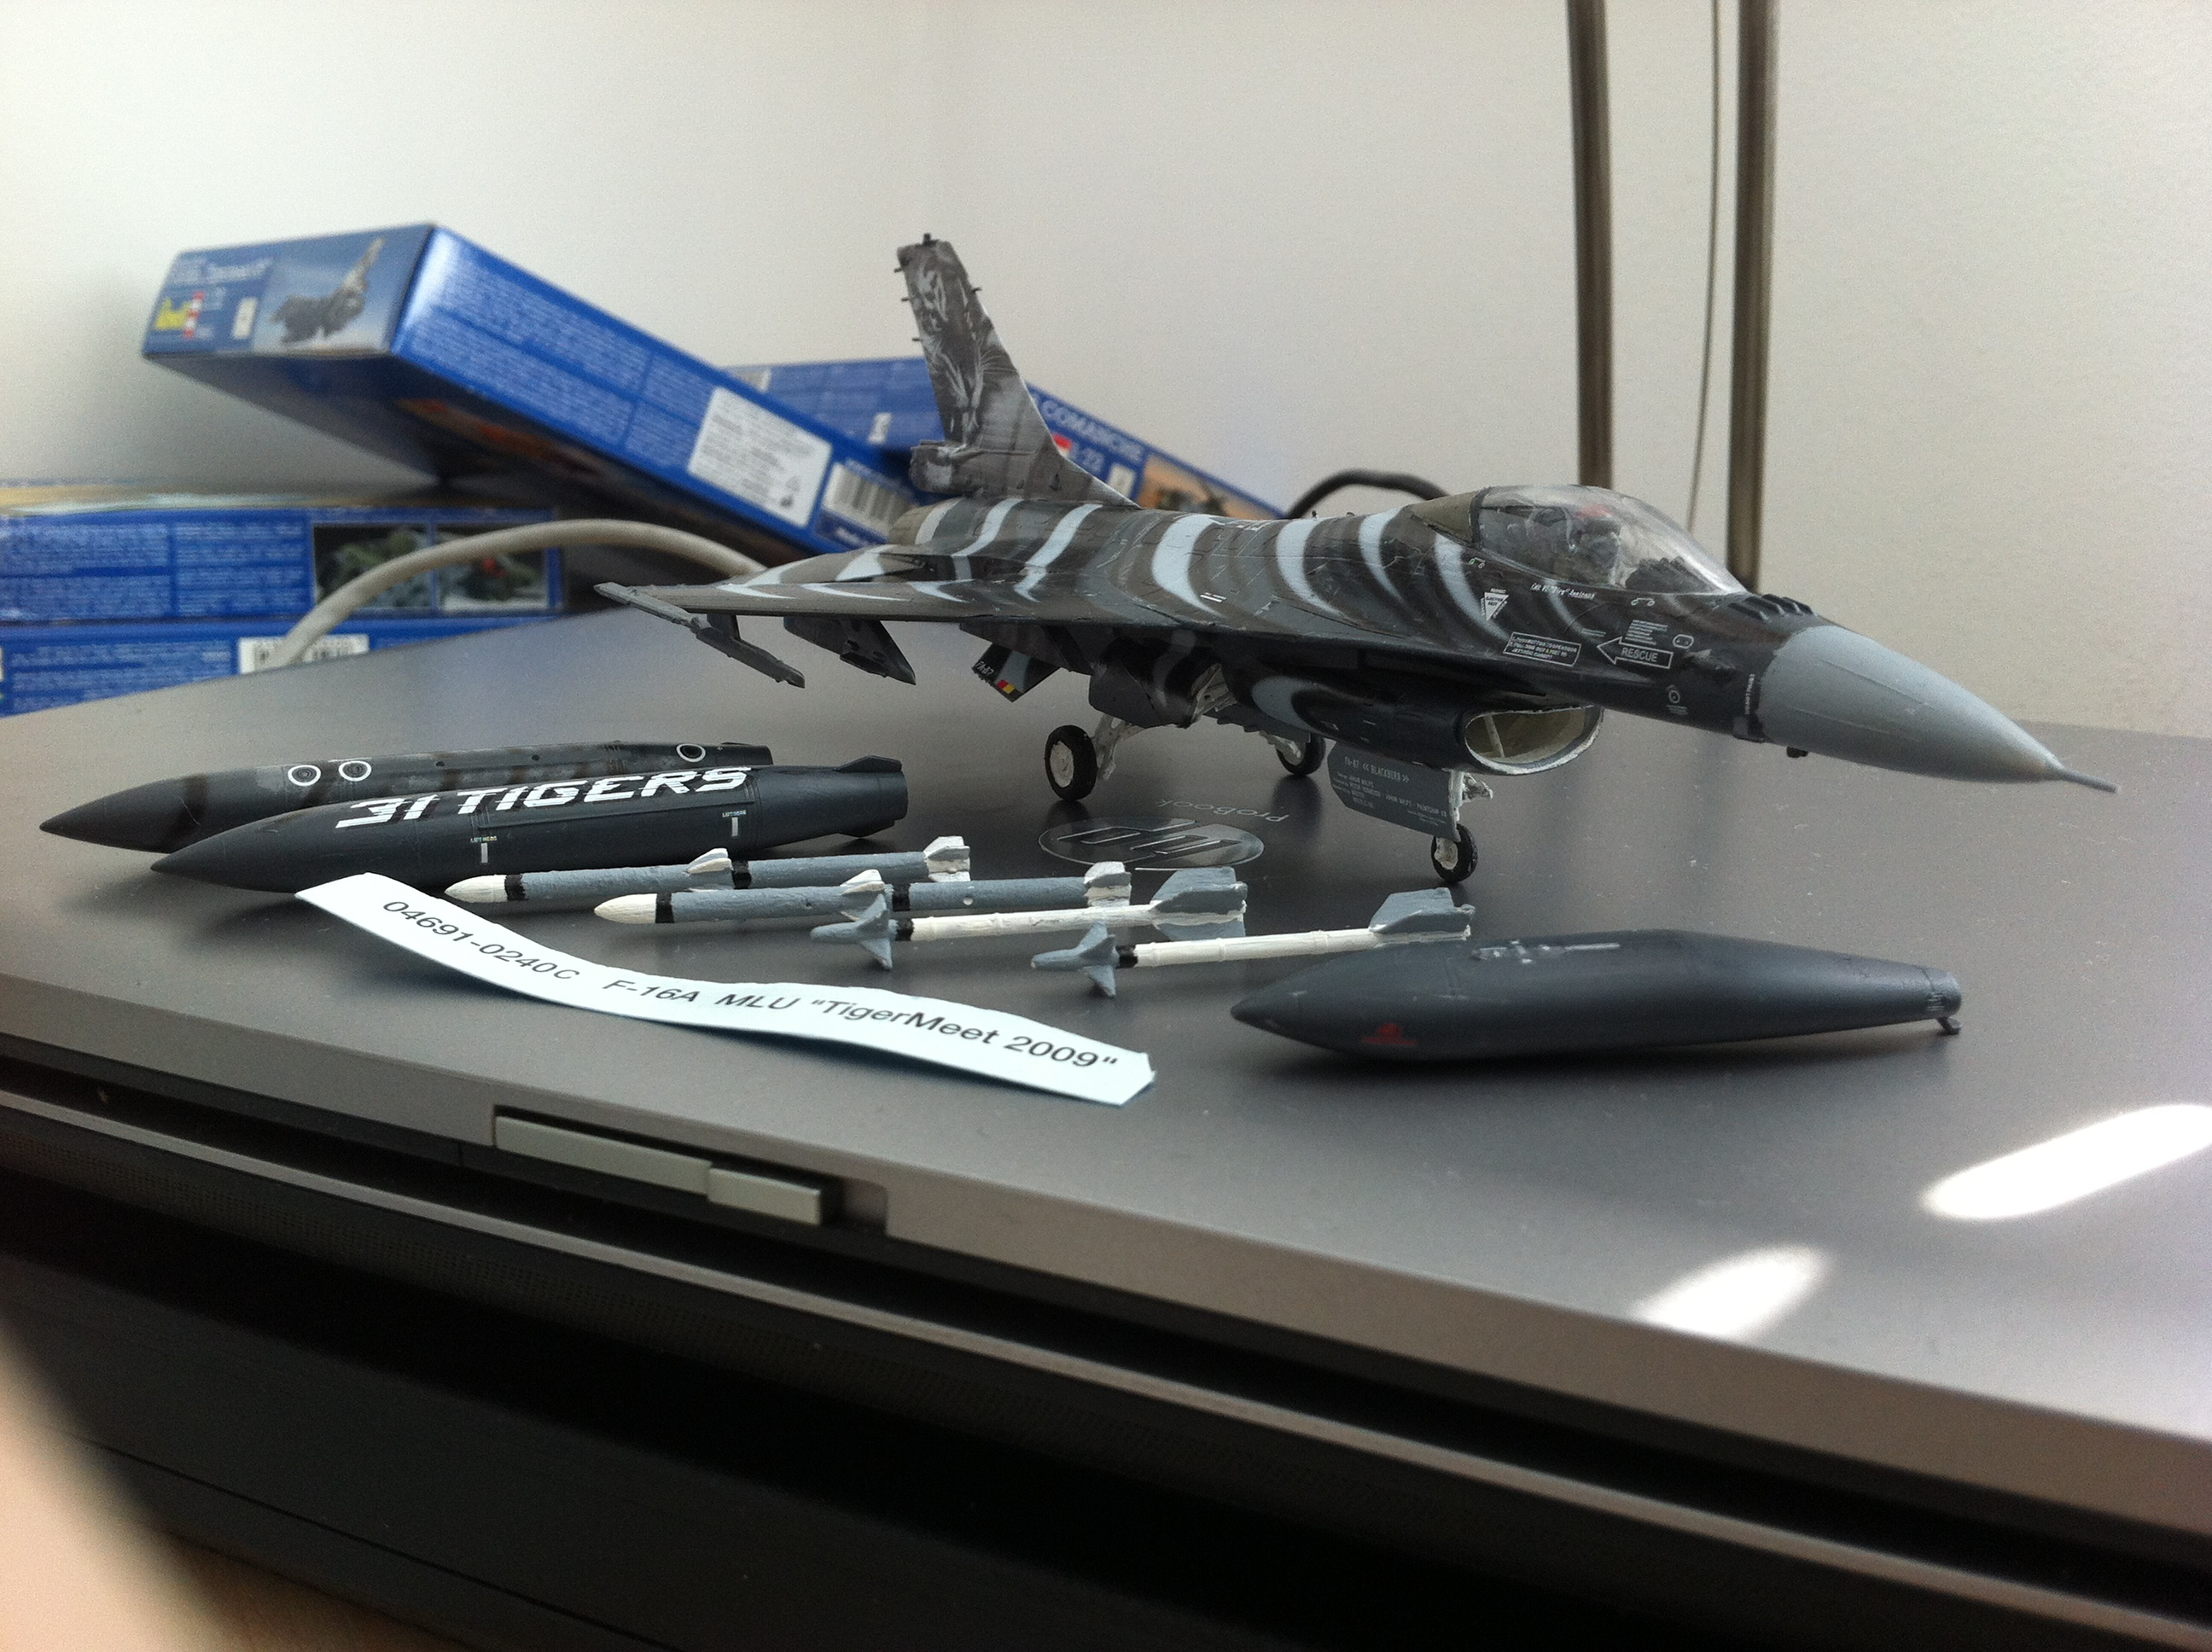 f16 mlu tigermeet 2009 revell model  u2013 construction pictures